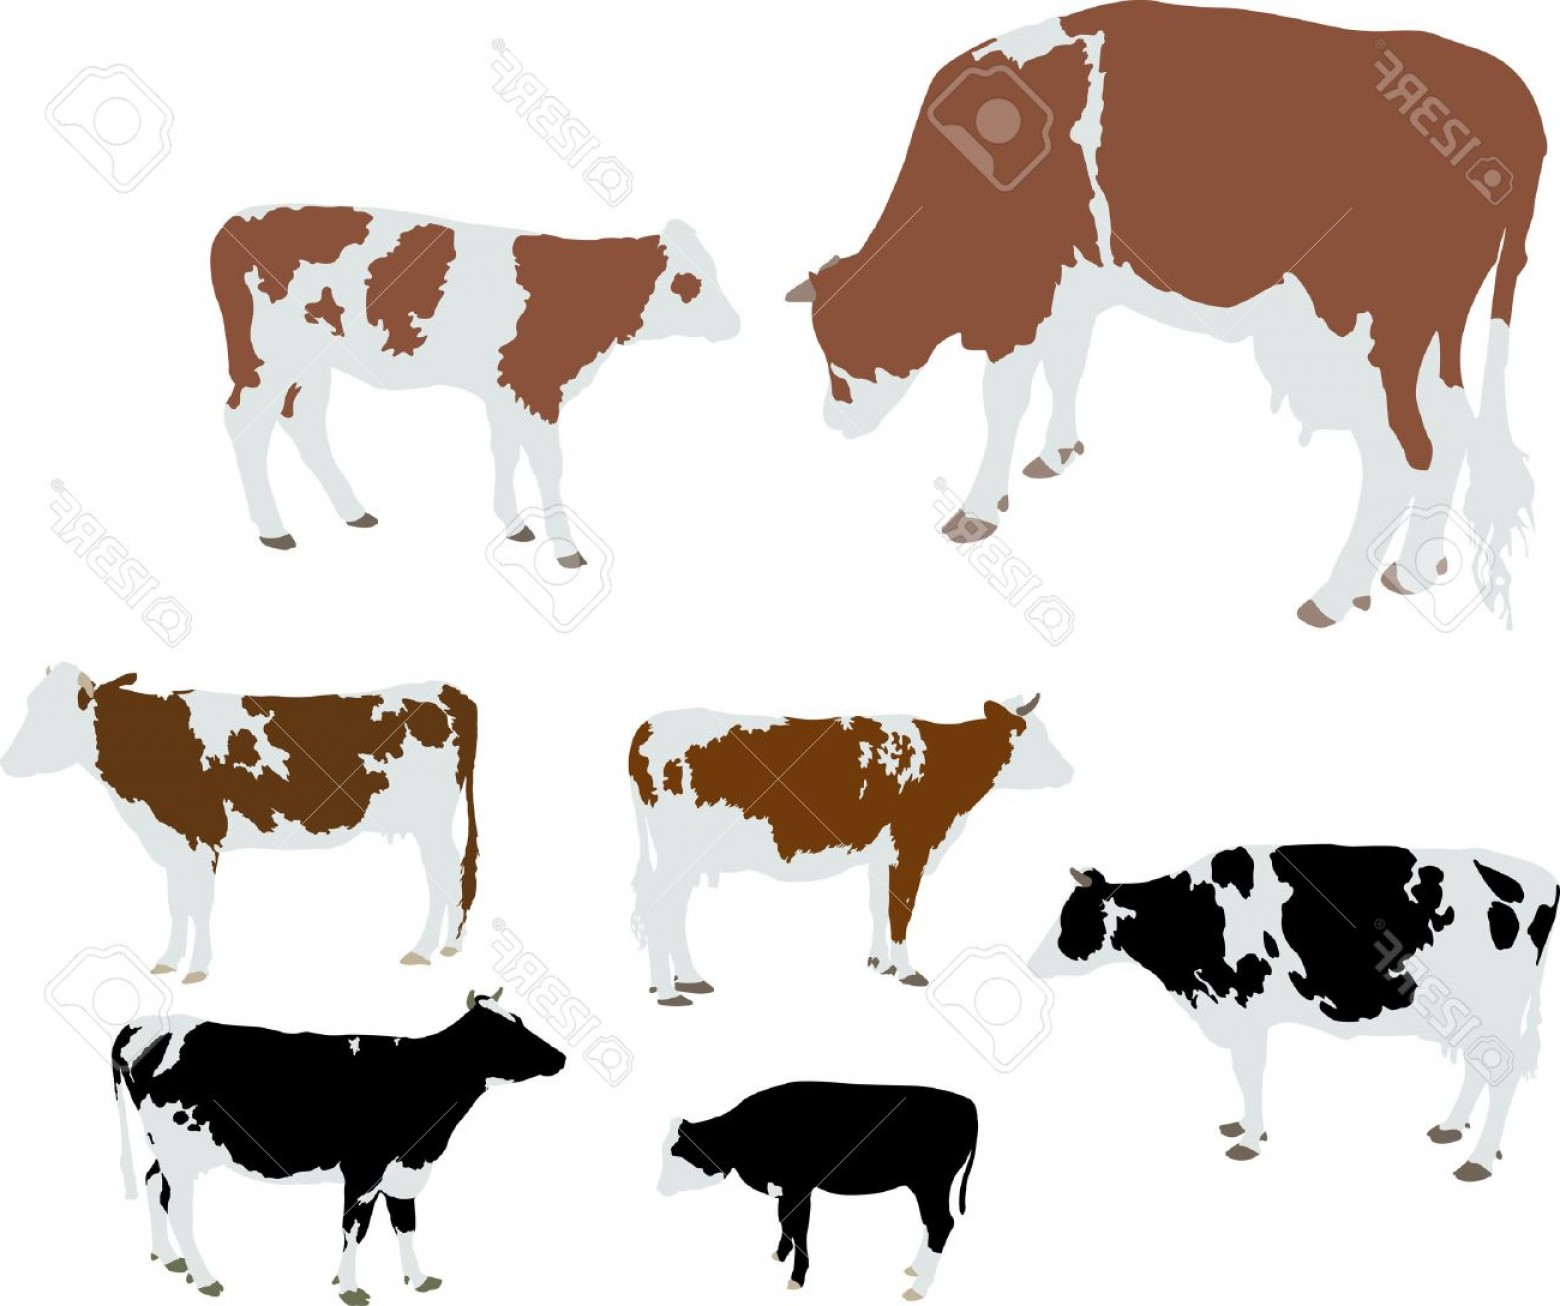 1560x1306 Calf And Cow Silhouette Vector Arenawp